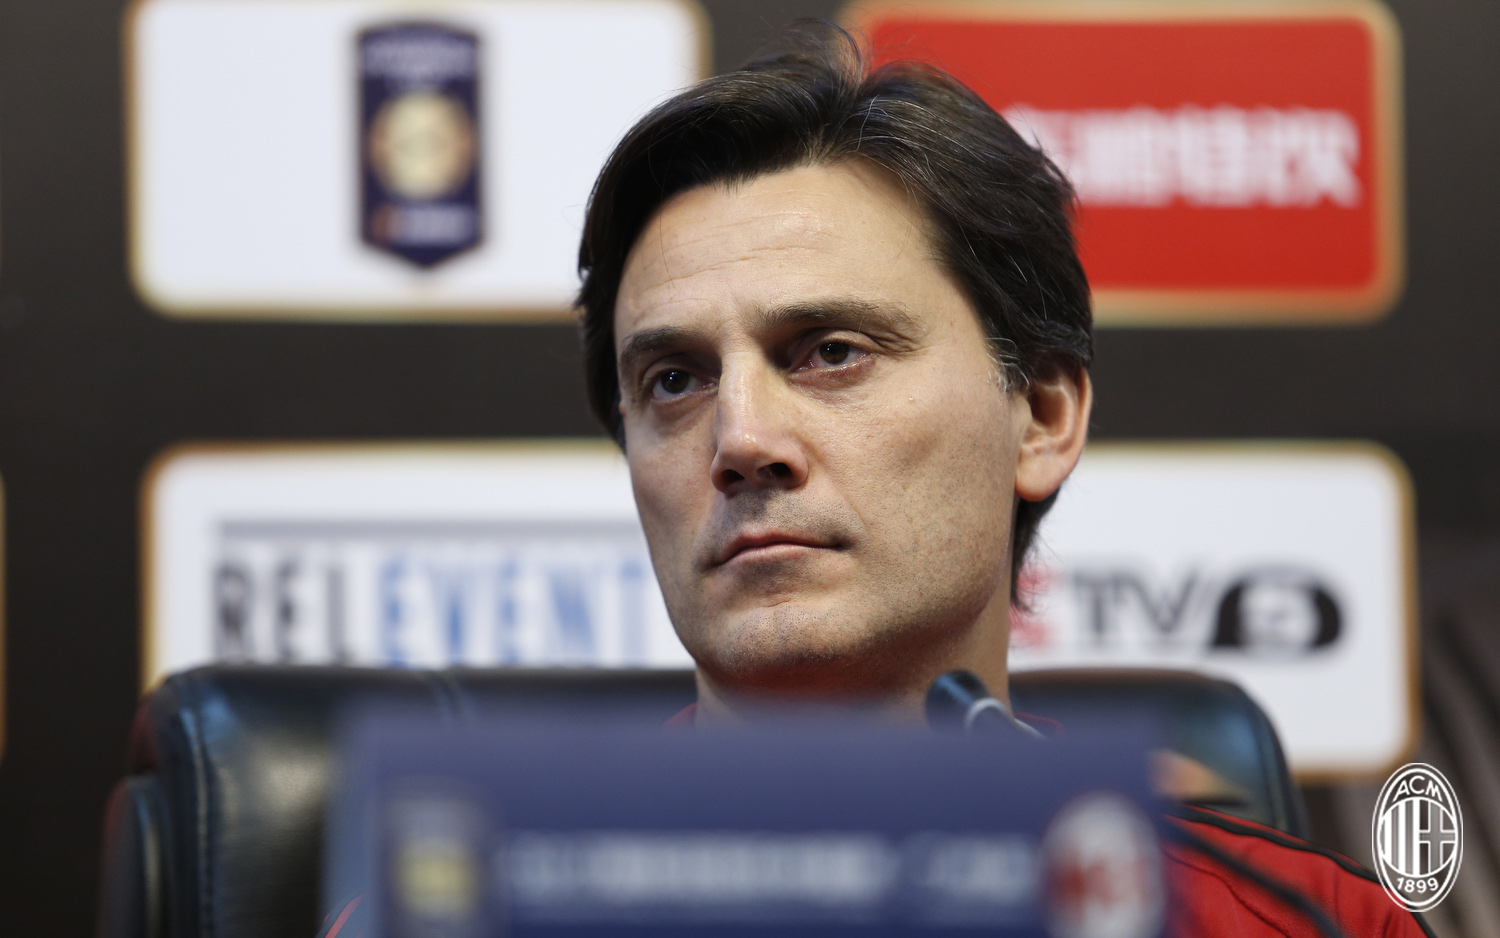 Foto LaPresse - Spada 15 Luglio 2017 - Guangzhou (Cina) A.C. Milan - Tournee Cina 2017 - Conferenza Stampa Montolivo e Montella Sport Calcio Nella foto: Montella Photo LaPresse - Spada July 15, 2017 Guangzhou (China) Sport Soccer A.C. Milan -China Tournee 2017 - Press Conference Head Coach Montella and Montolivo In the pic: Montella